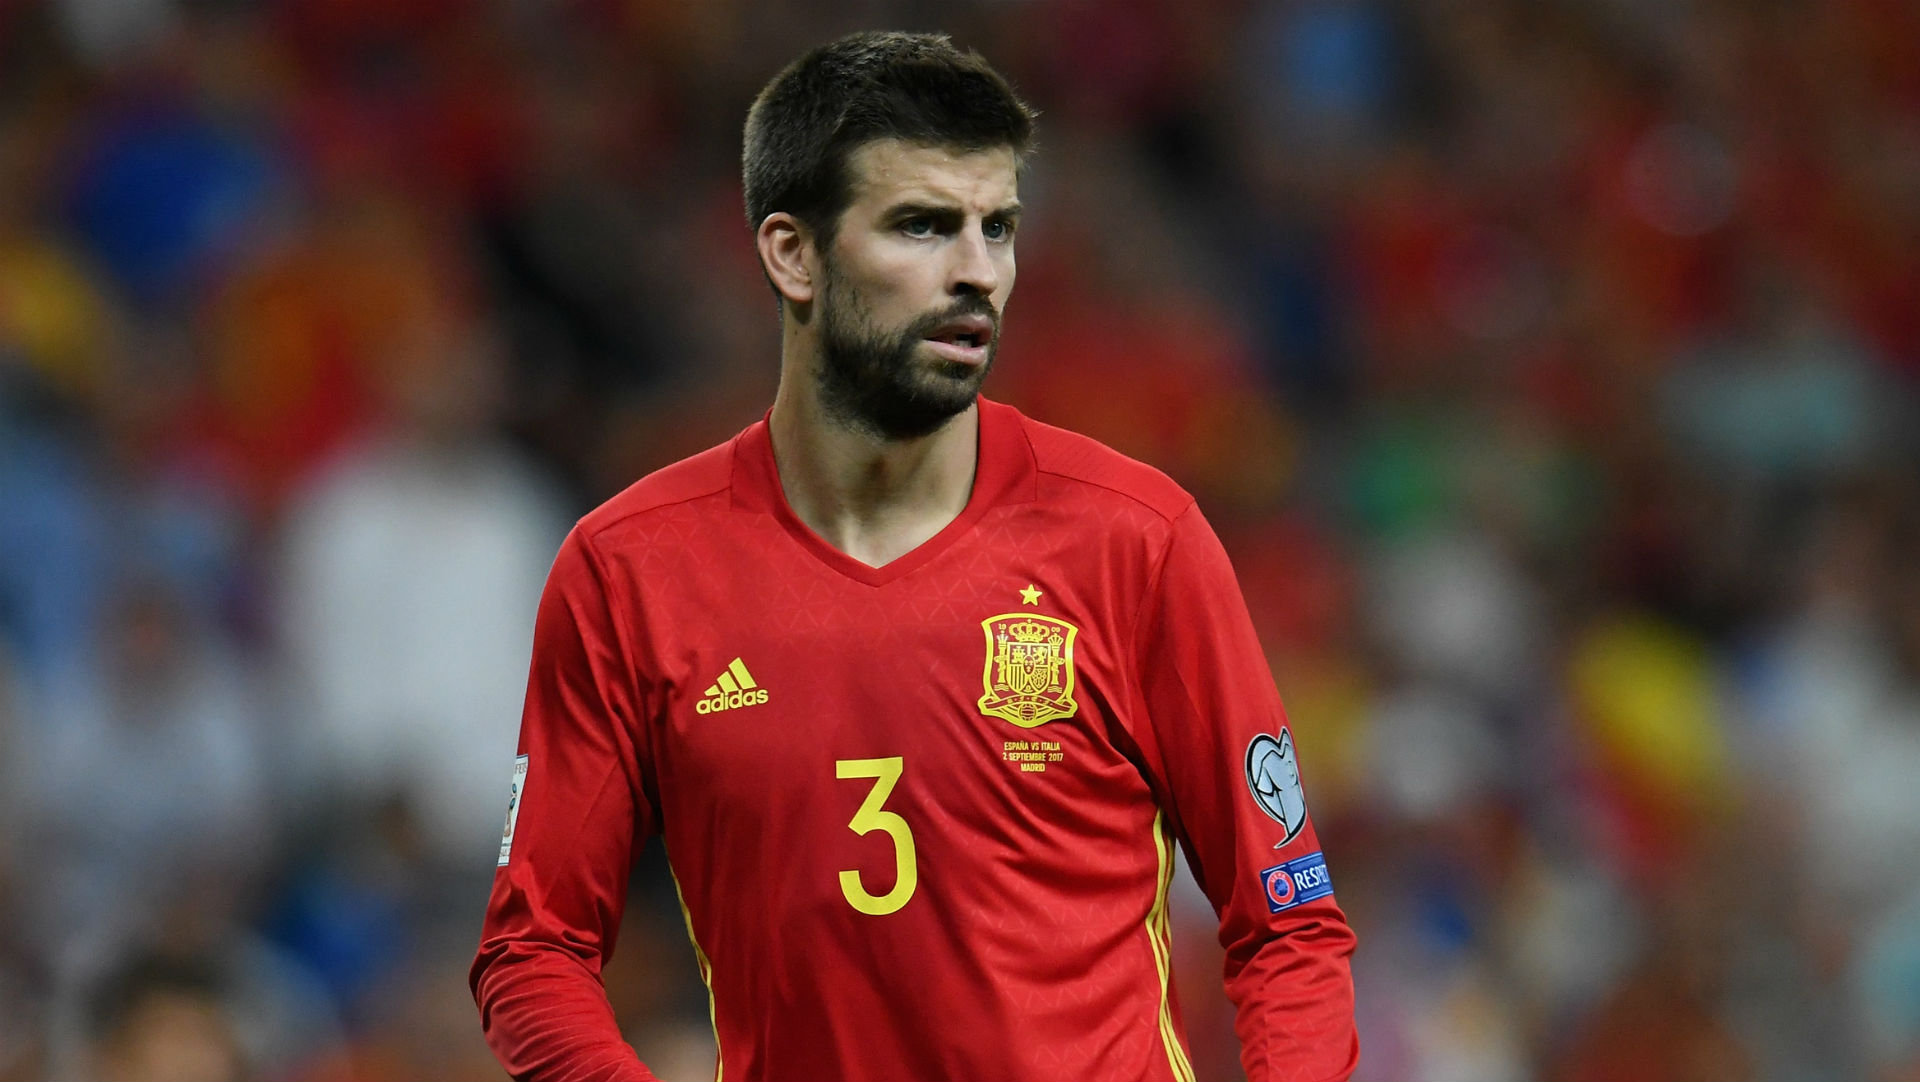 Gerard Pique confirms retirement from Spain national team to focus on Barcelona